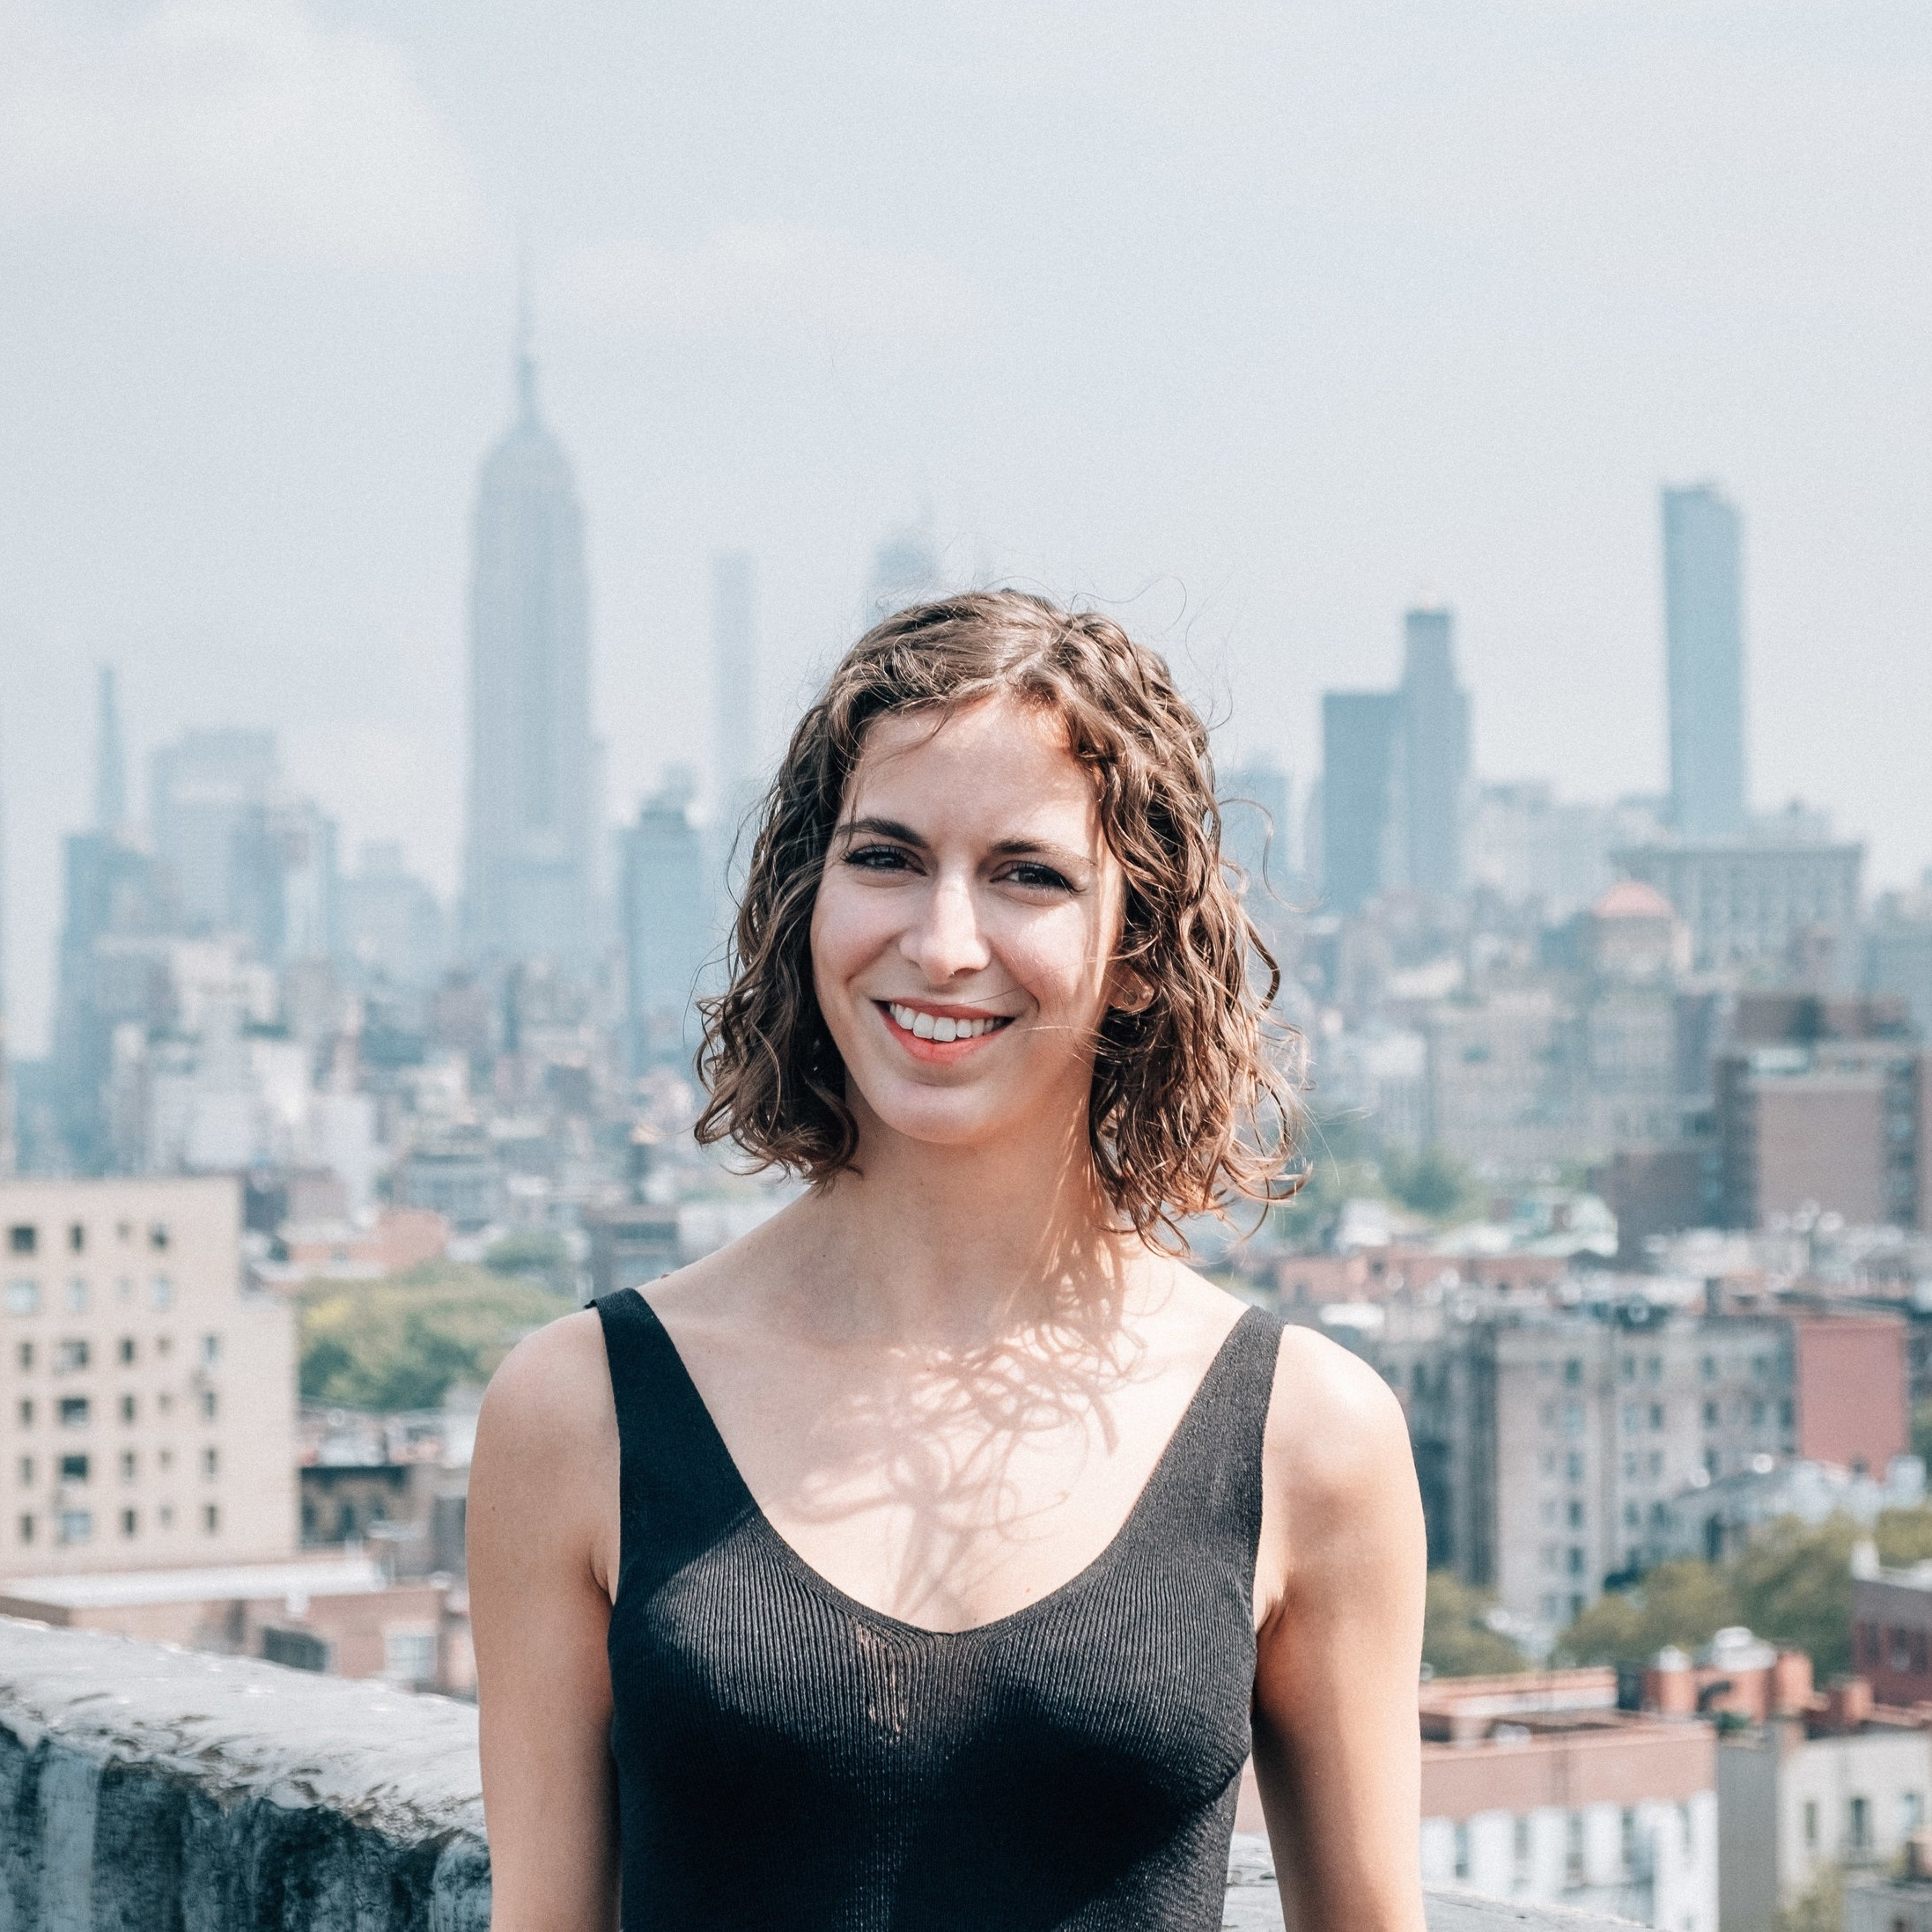 Chloe Bennett - Architectural Designercbennett@inc.nycChloe Bennett is a licensed architect in New York State who has gained a wide variety of experience since entering the field of architecture in 2011. Hailing from Houston, Texas, she earned her Bachelor of Environmental Design from Texas A&M University, where she developed a strong technical background that led her to pursue experience in tech, educational, and environmentally responsive design. While pursuing her Master of Architecture at the University of Cincinnati, she cultivated dual interests in vernacular design and aesthetic experiences, leading to a thesis on context driven design through the lens of phenomenology. Chloe has been working with INC since 2016, where her passions for the spontaneity of everyday lived experience and the re-contextualization of the familiar have marked a variety of INC's residential and hospitality projects. These passions bleed past professional boundaries - if you bump into her on the street, she's probably meandering to nowhere in particular, but will eventually end up trying a new restaurant or watching sports in a dive bar with friends.